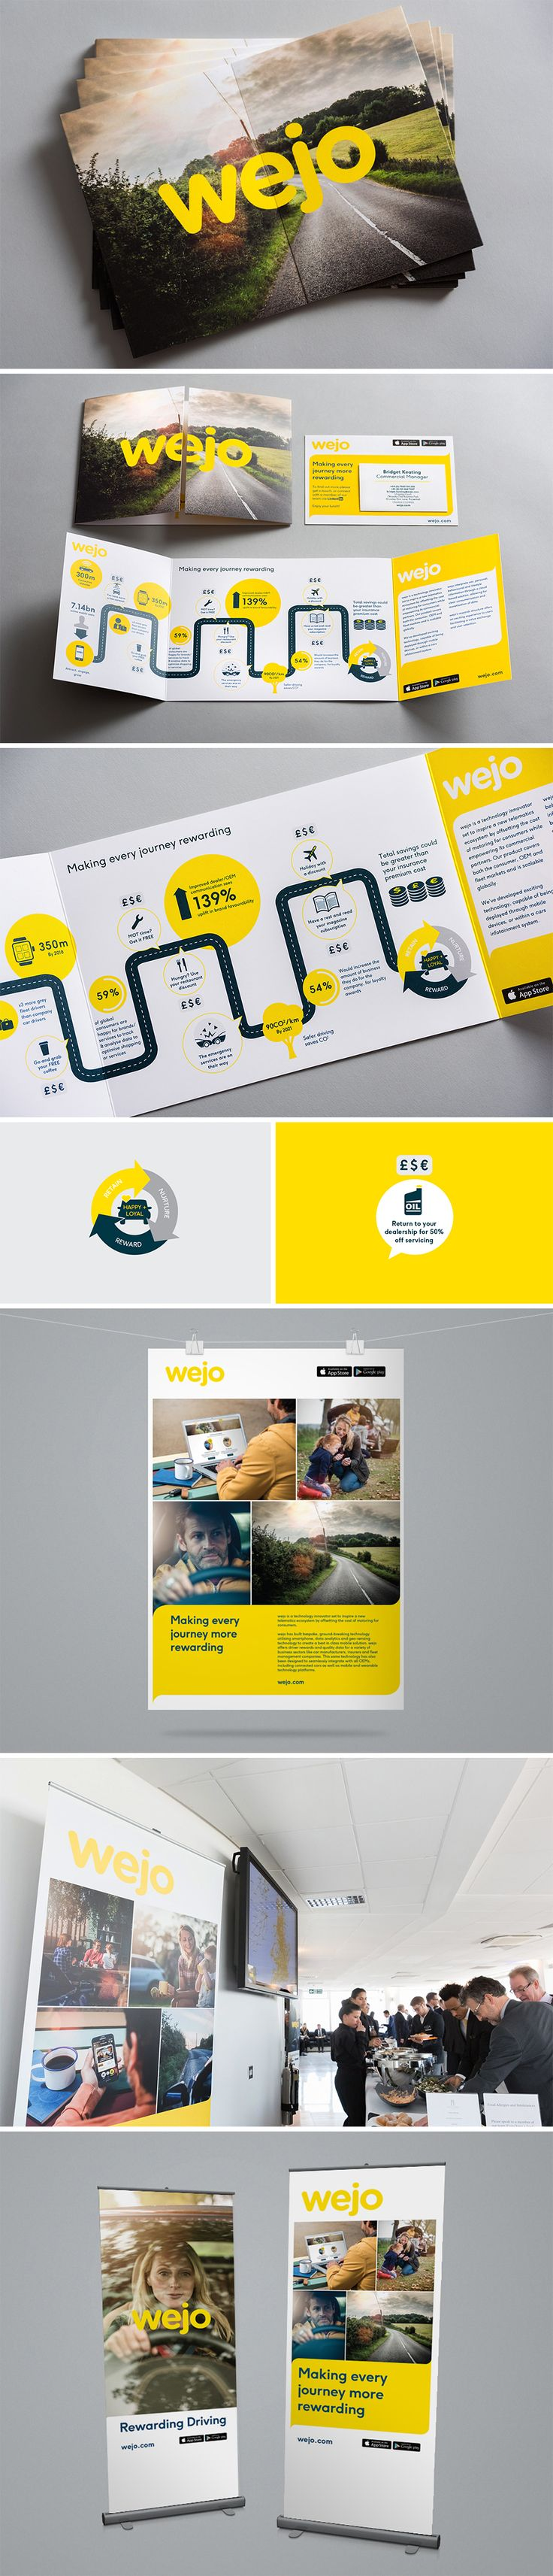 Exhibition Design | POS | Leaflet Design for Wejo by Contrast Creative  SEE MORE: http://www.contrastcreative.co.uk/wejo-conference-material/